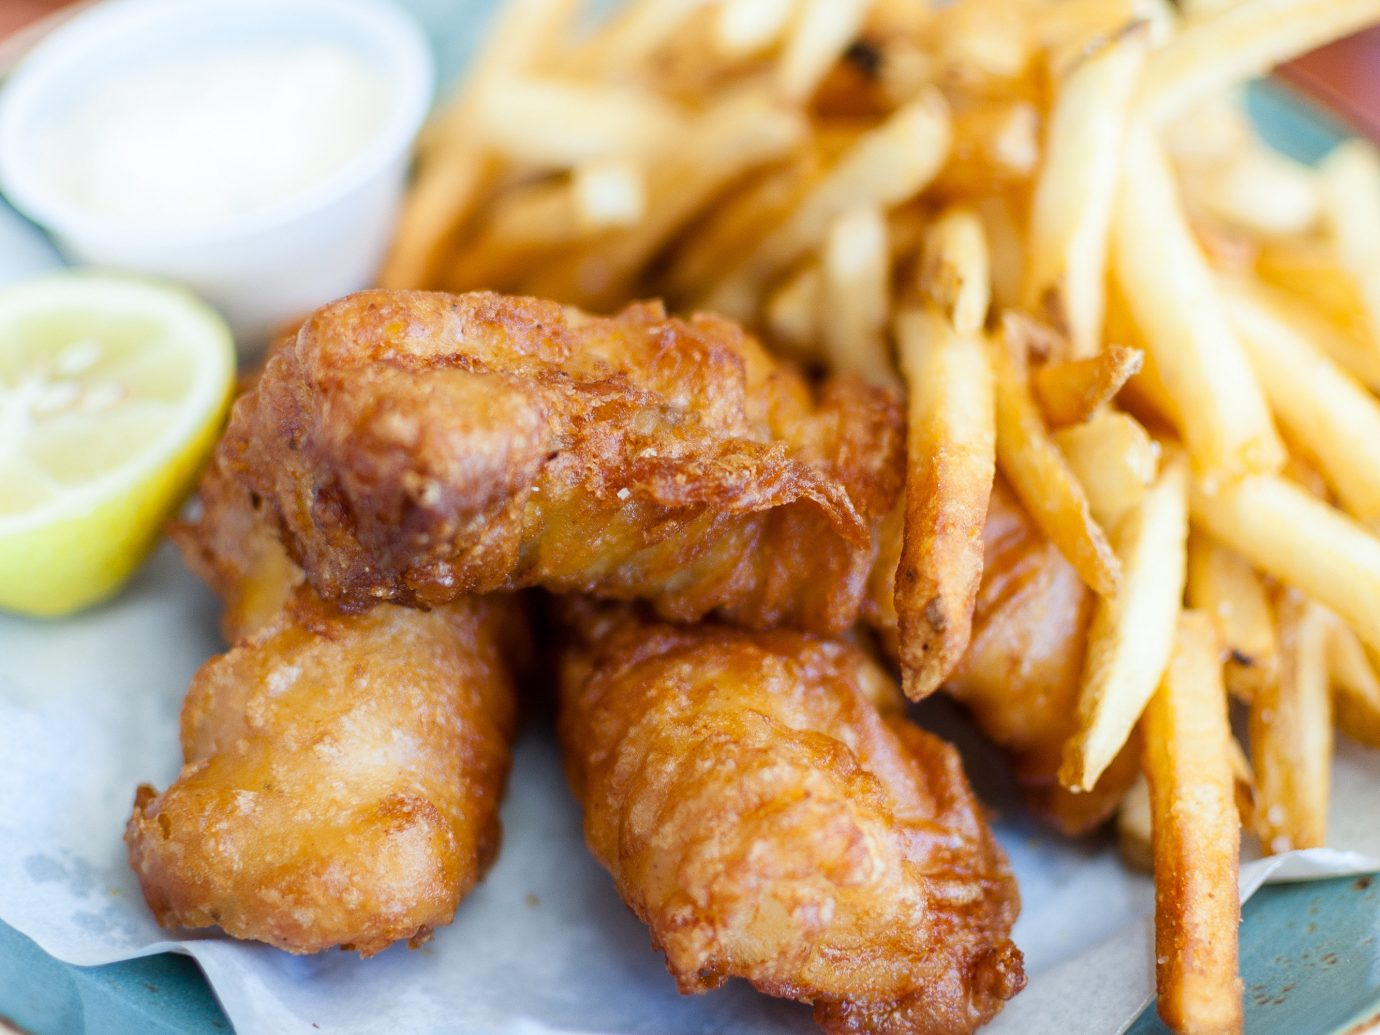 Jetsetter Guides Road Trips Trip Ideas food plate dish fried food meat french fries cuisine fish meal fish and chips fries fast food chicken meat asian food thai food chicken fingers produce satay